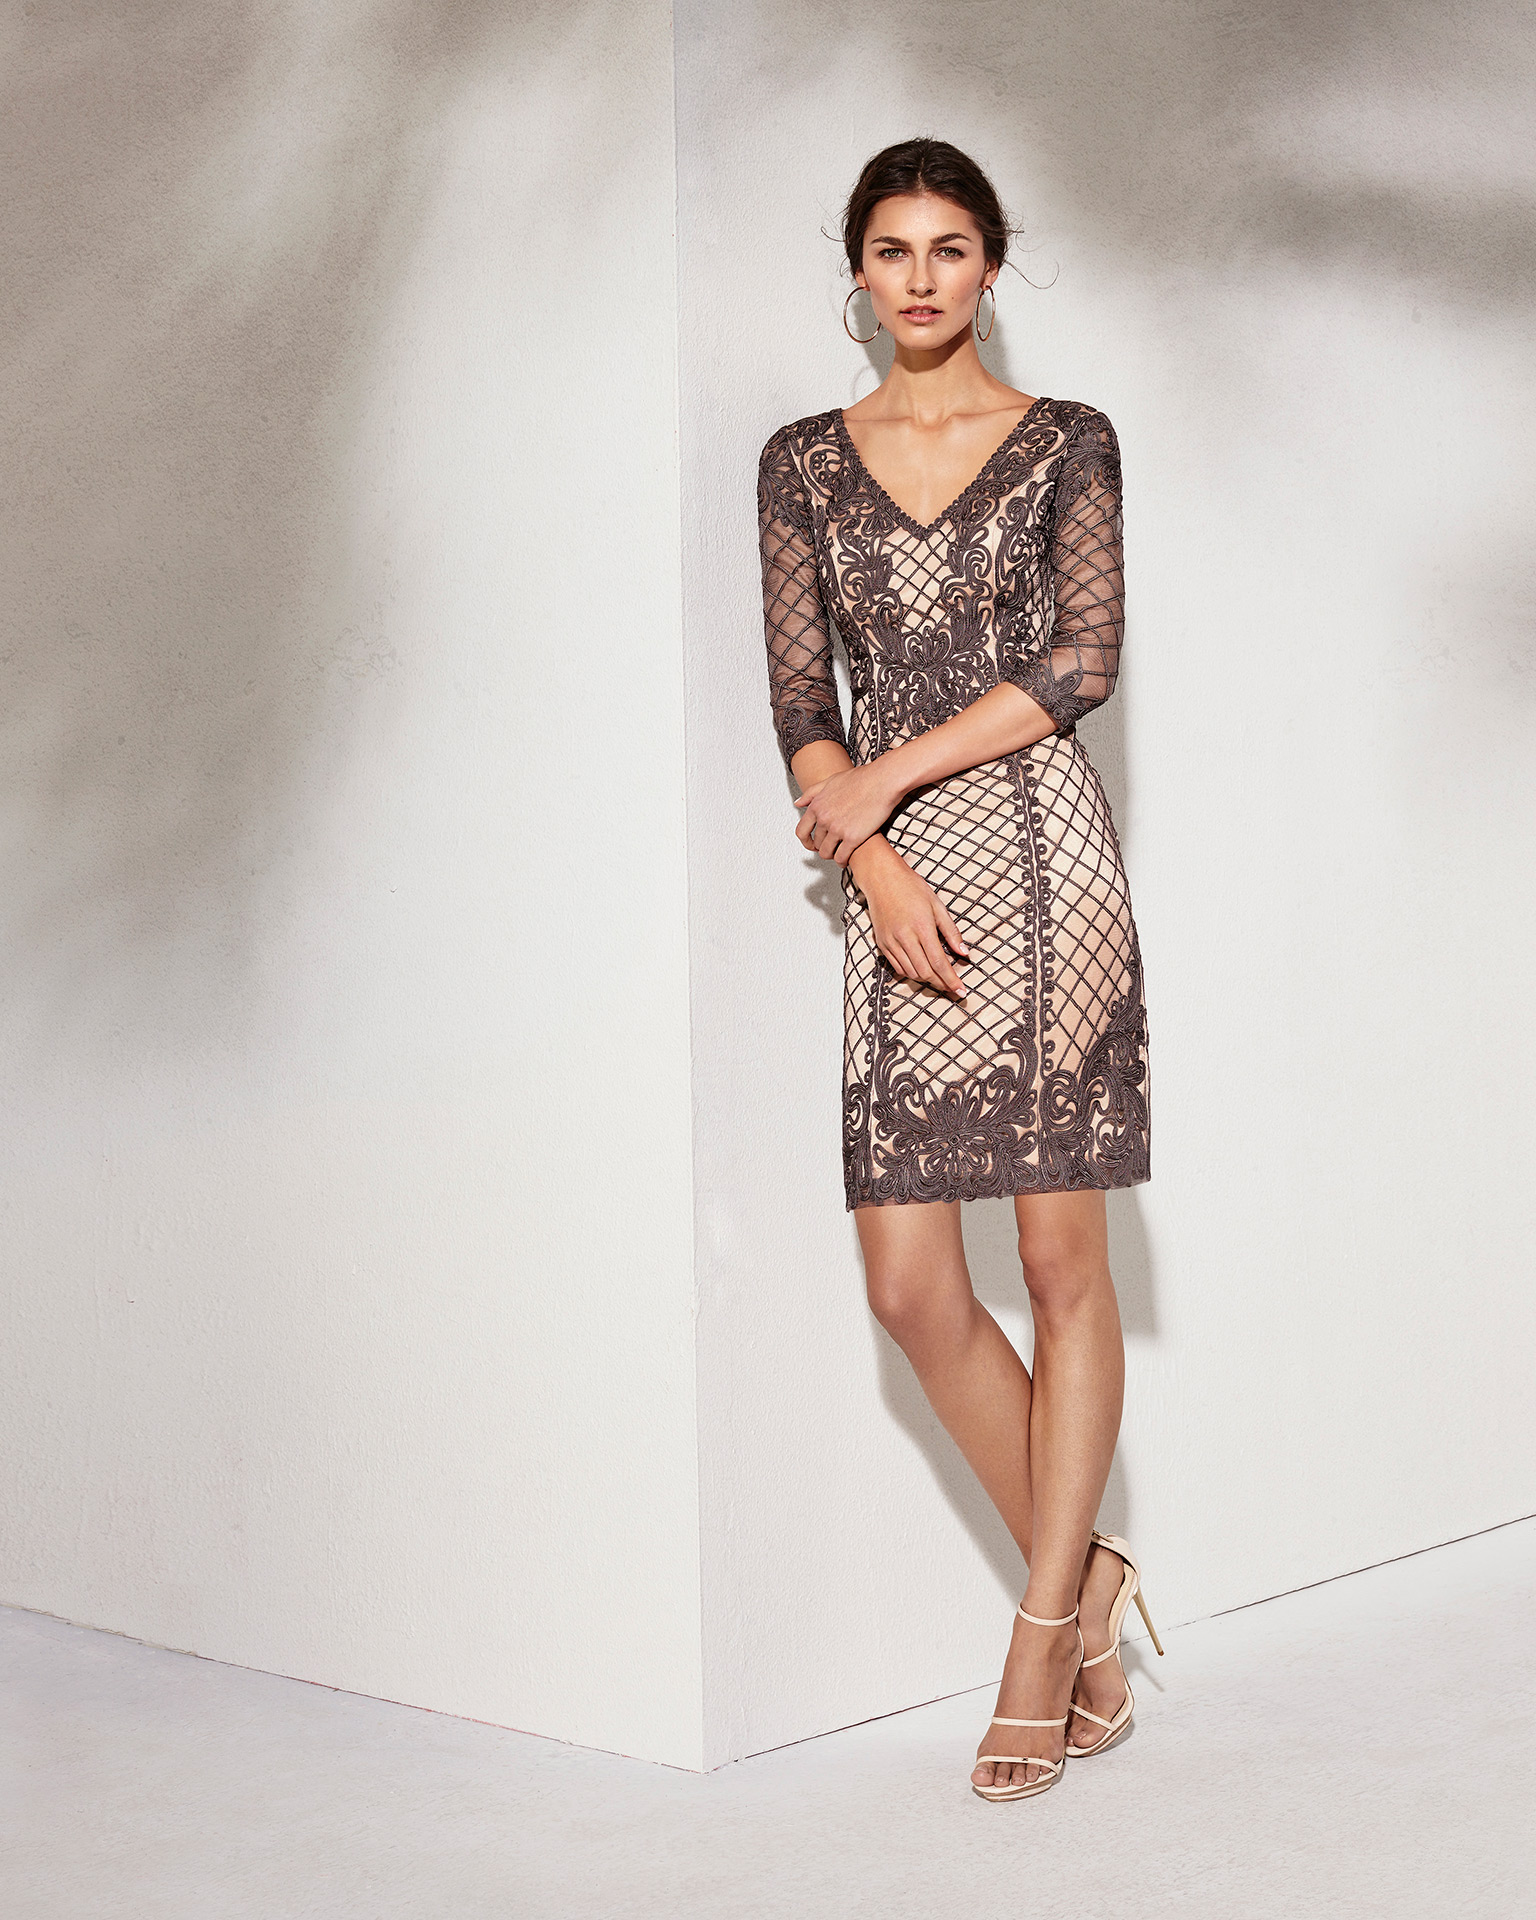 Short lace cocktail dress with chiffon jacket, V-neckline and three-quarter sleeves. Available in smoke/nude, black/ivory and navy blue/pink. 2018 MARFIL BARCELONA Collection.